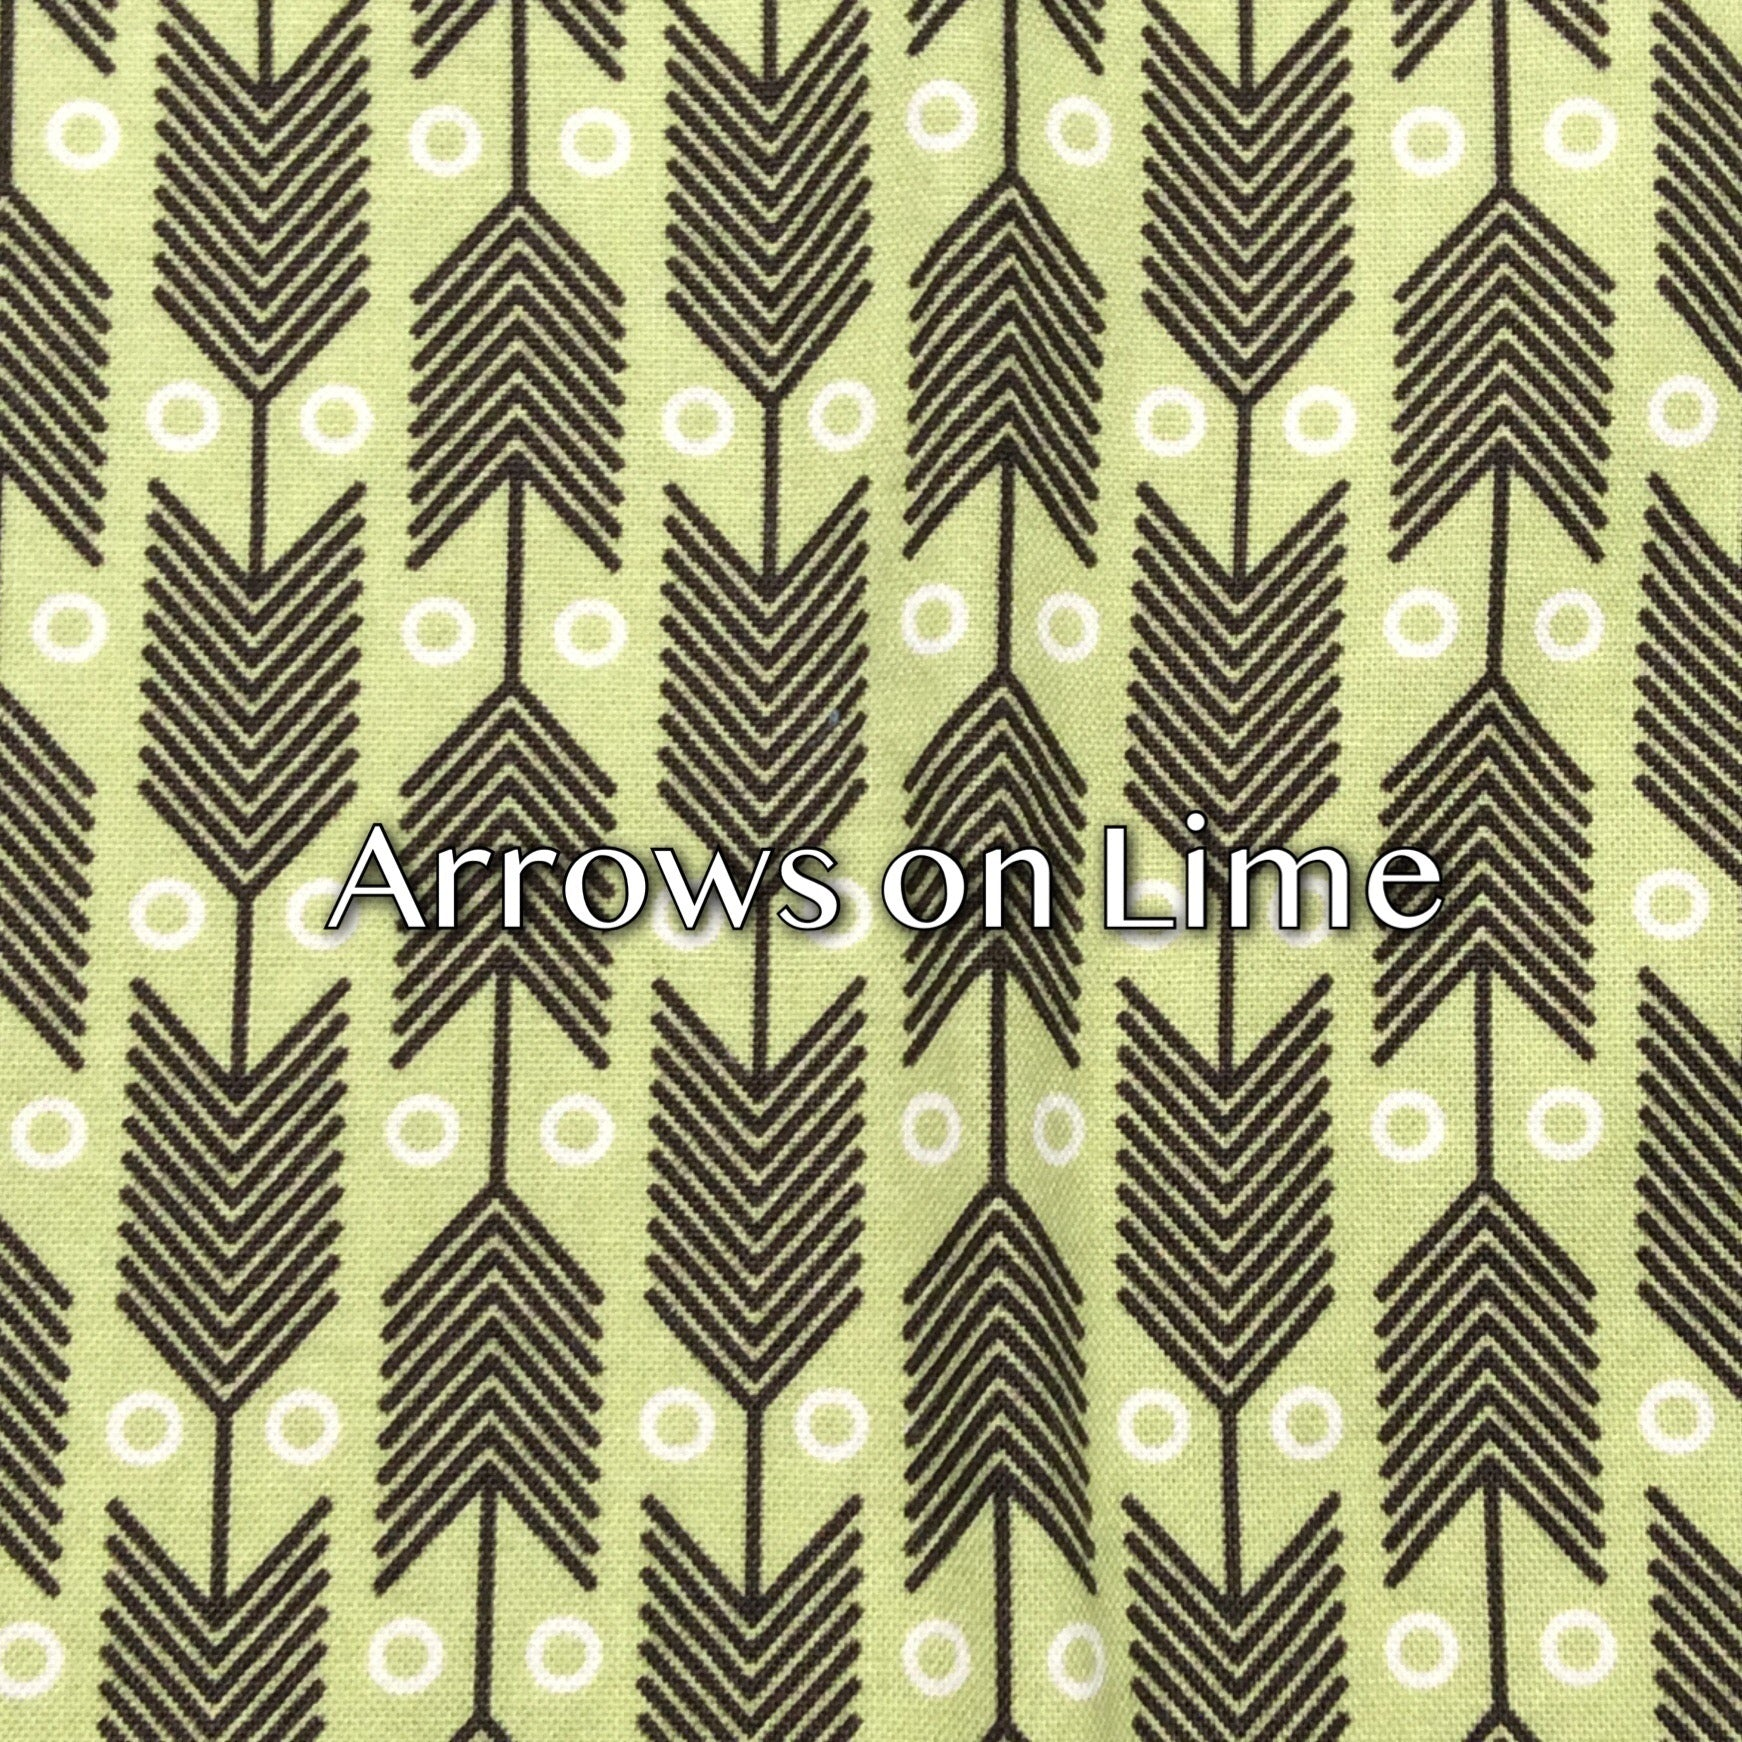 Arrows on Lime - Quilter's Cotton